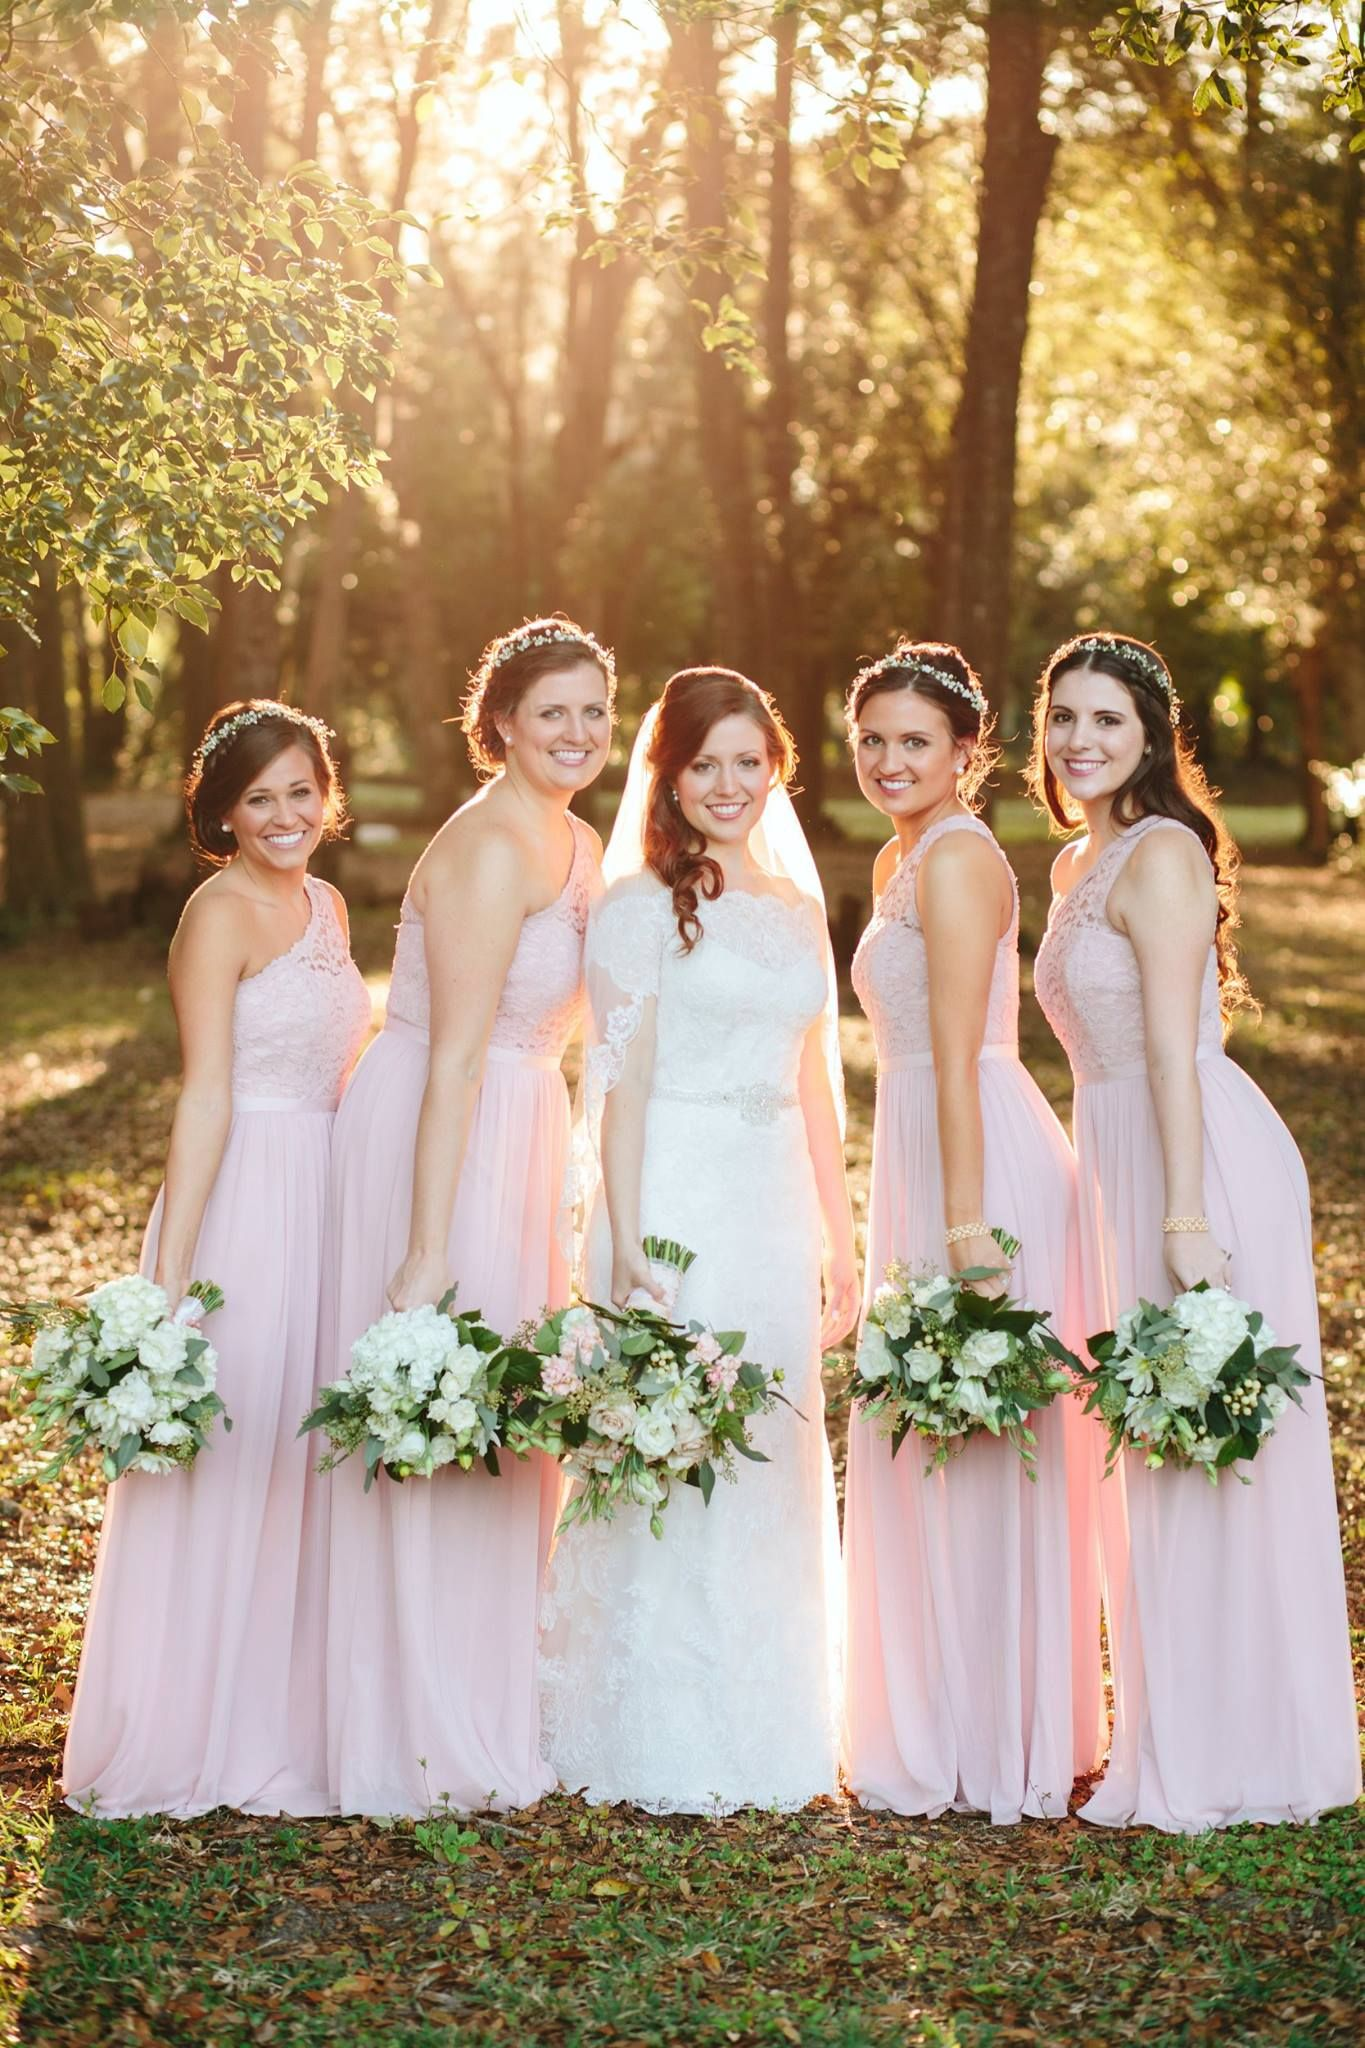 Curls and flower crowns for a lovely pink wedding day! | Kristy's Artistry & Design